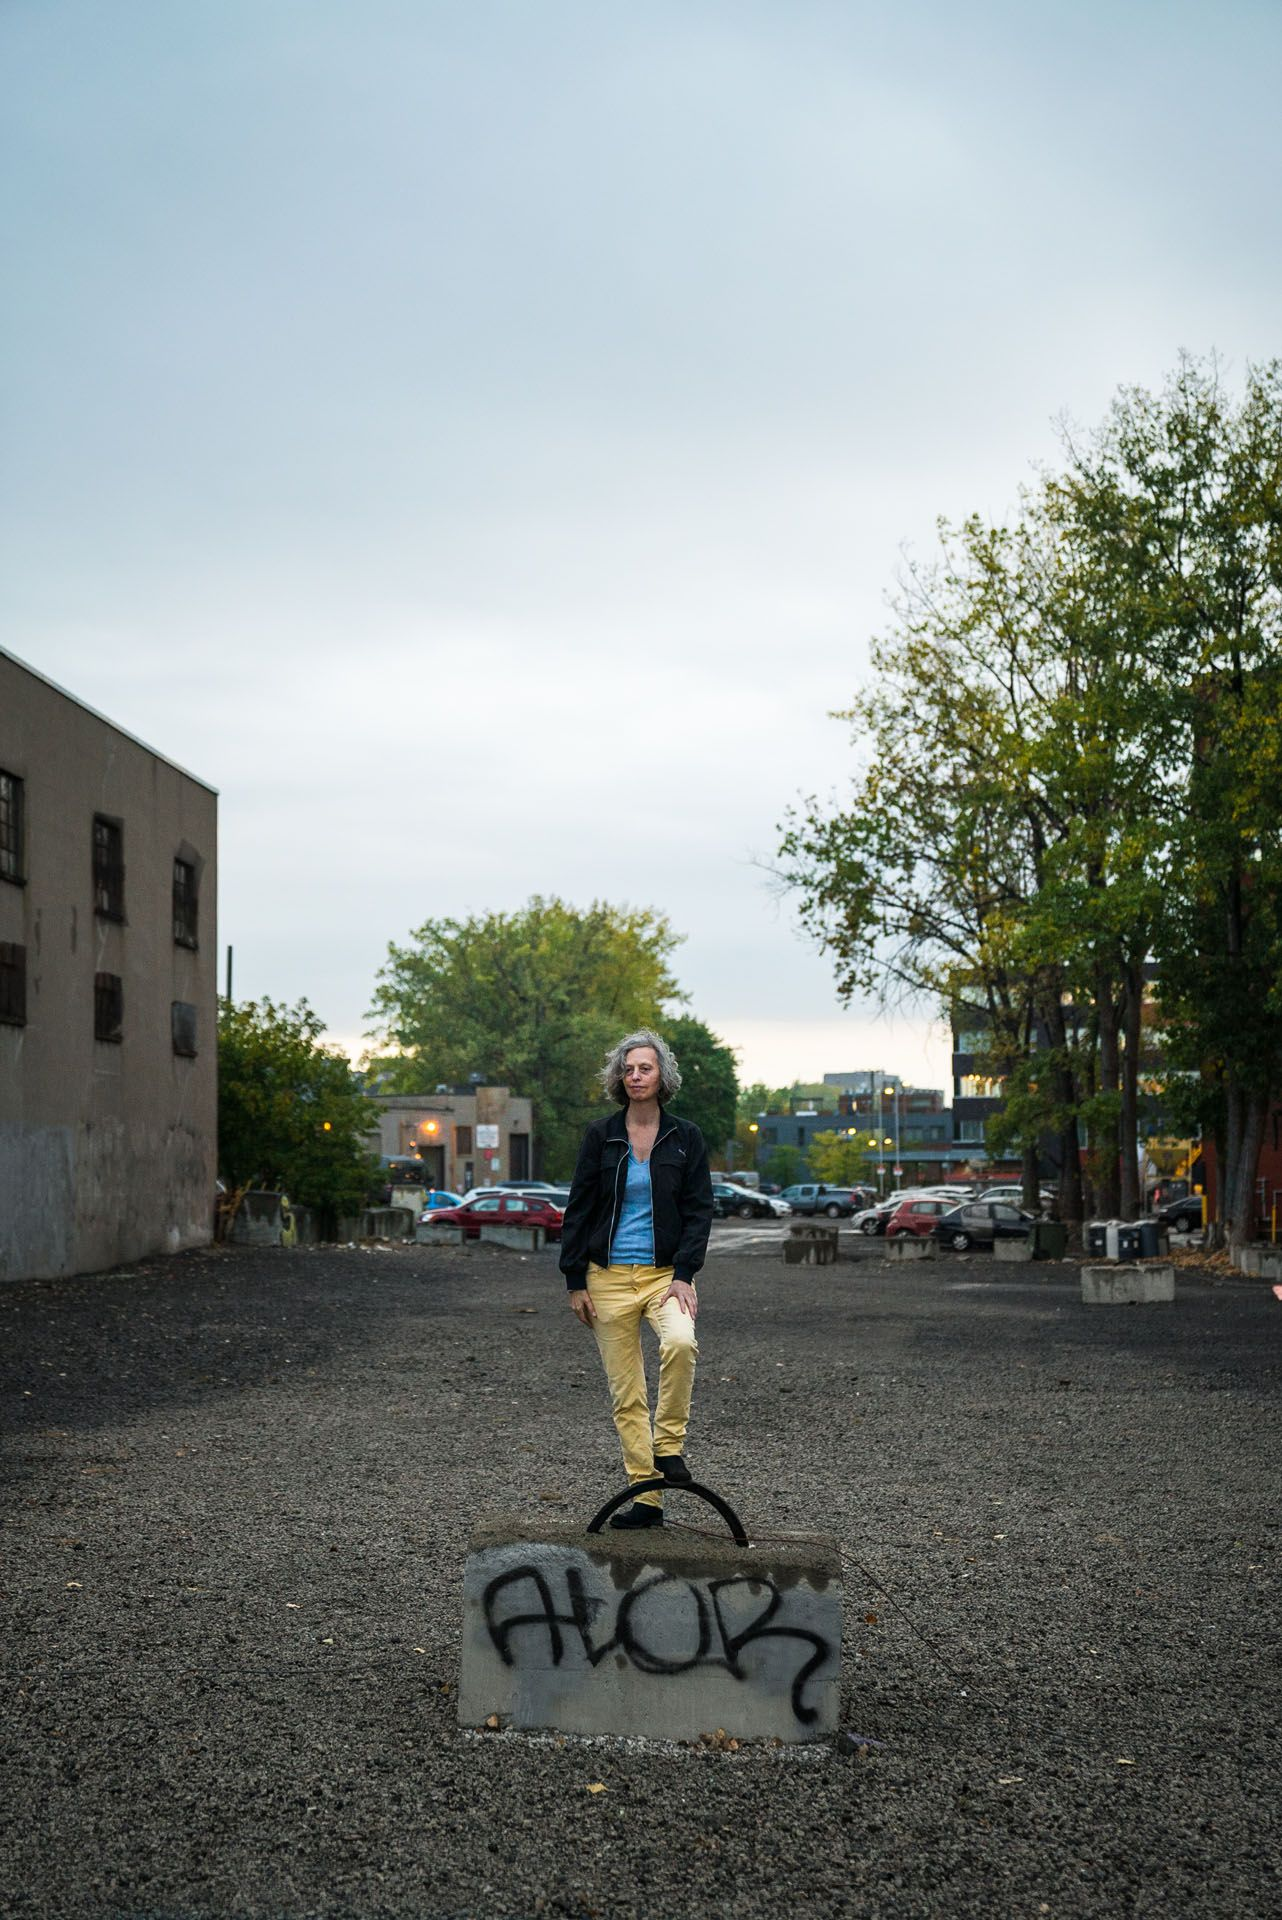 grey haired woman posing on concrete block in empty parking lot by Bruno Florin for mile ex mille vie